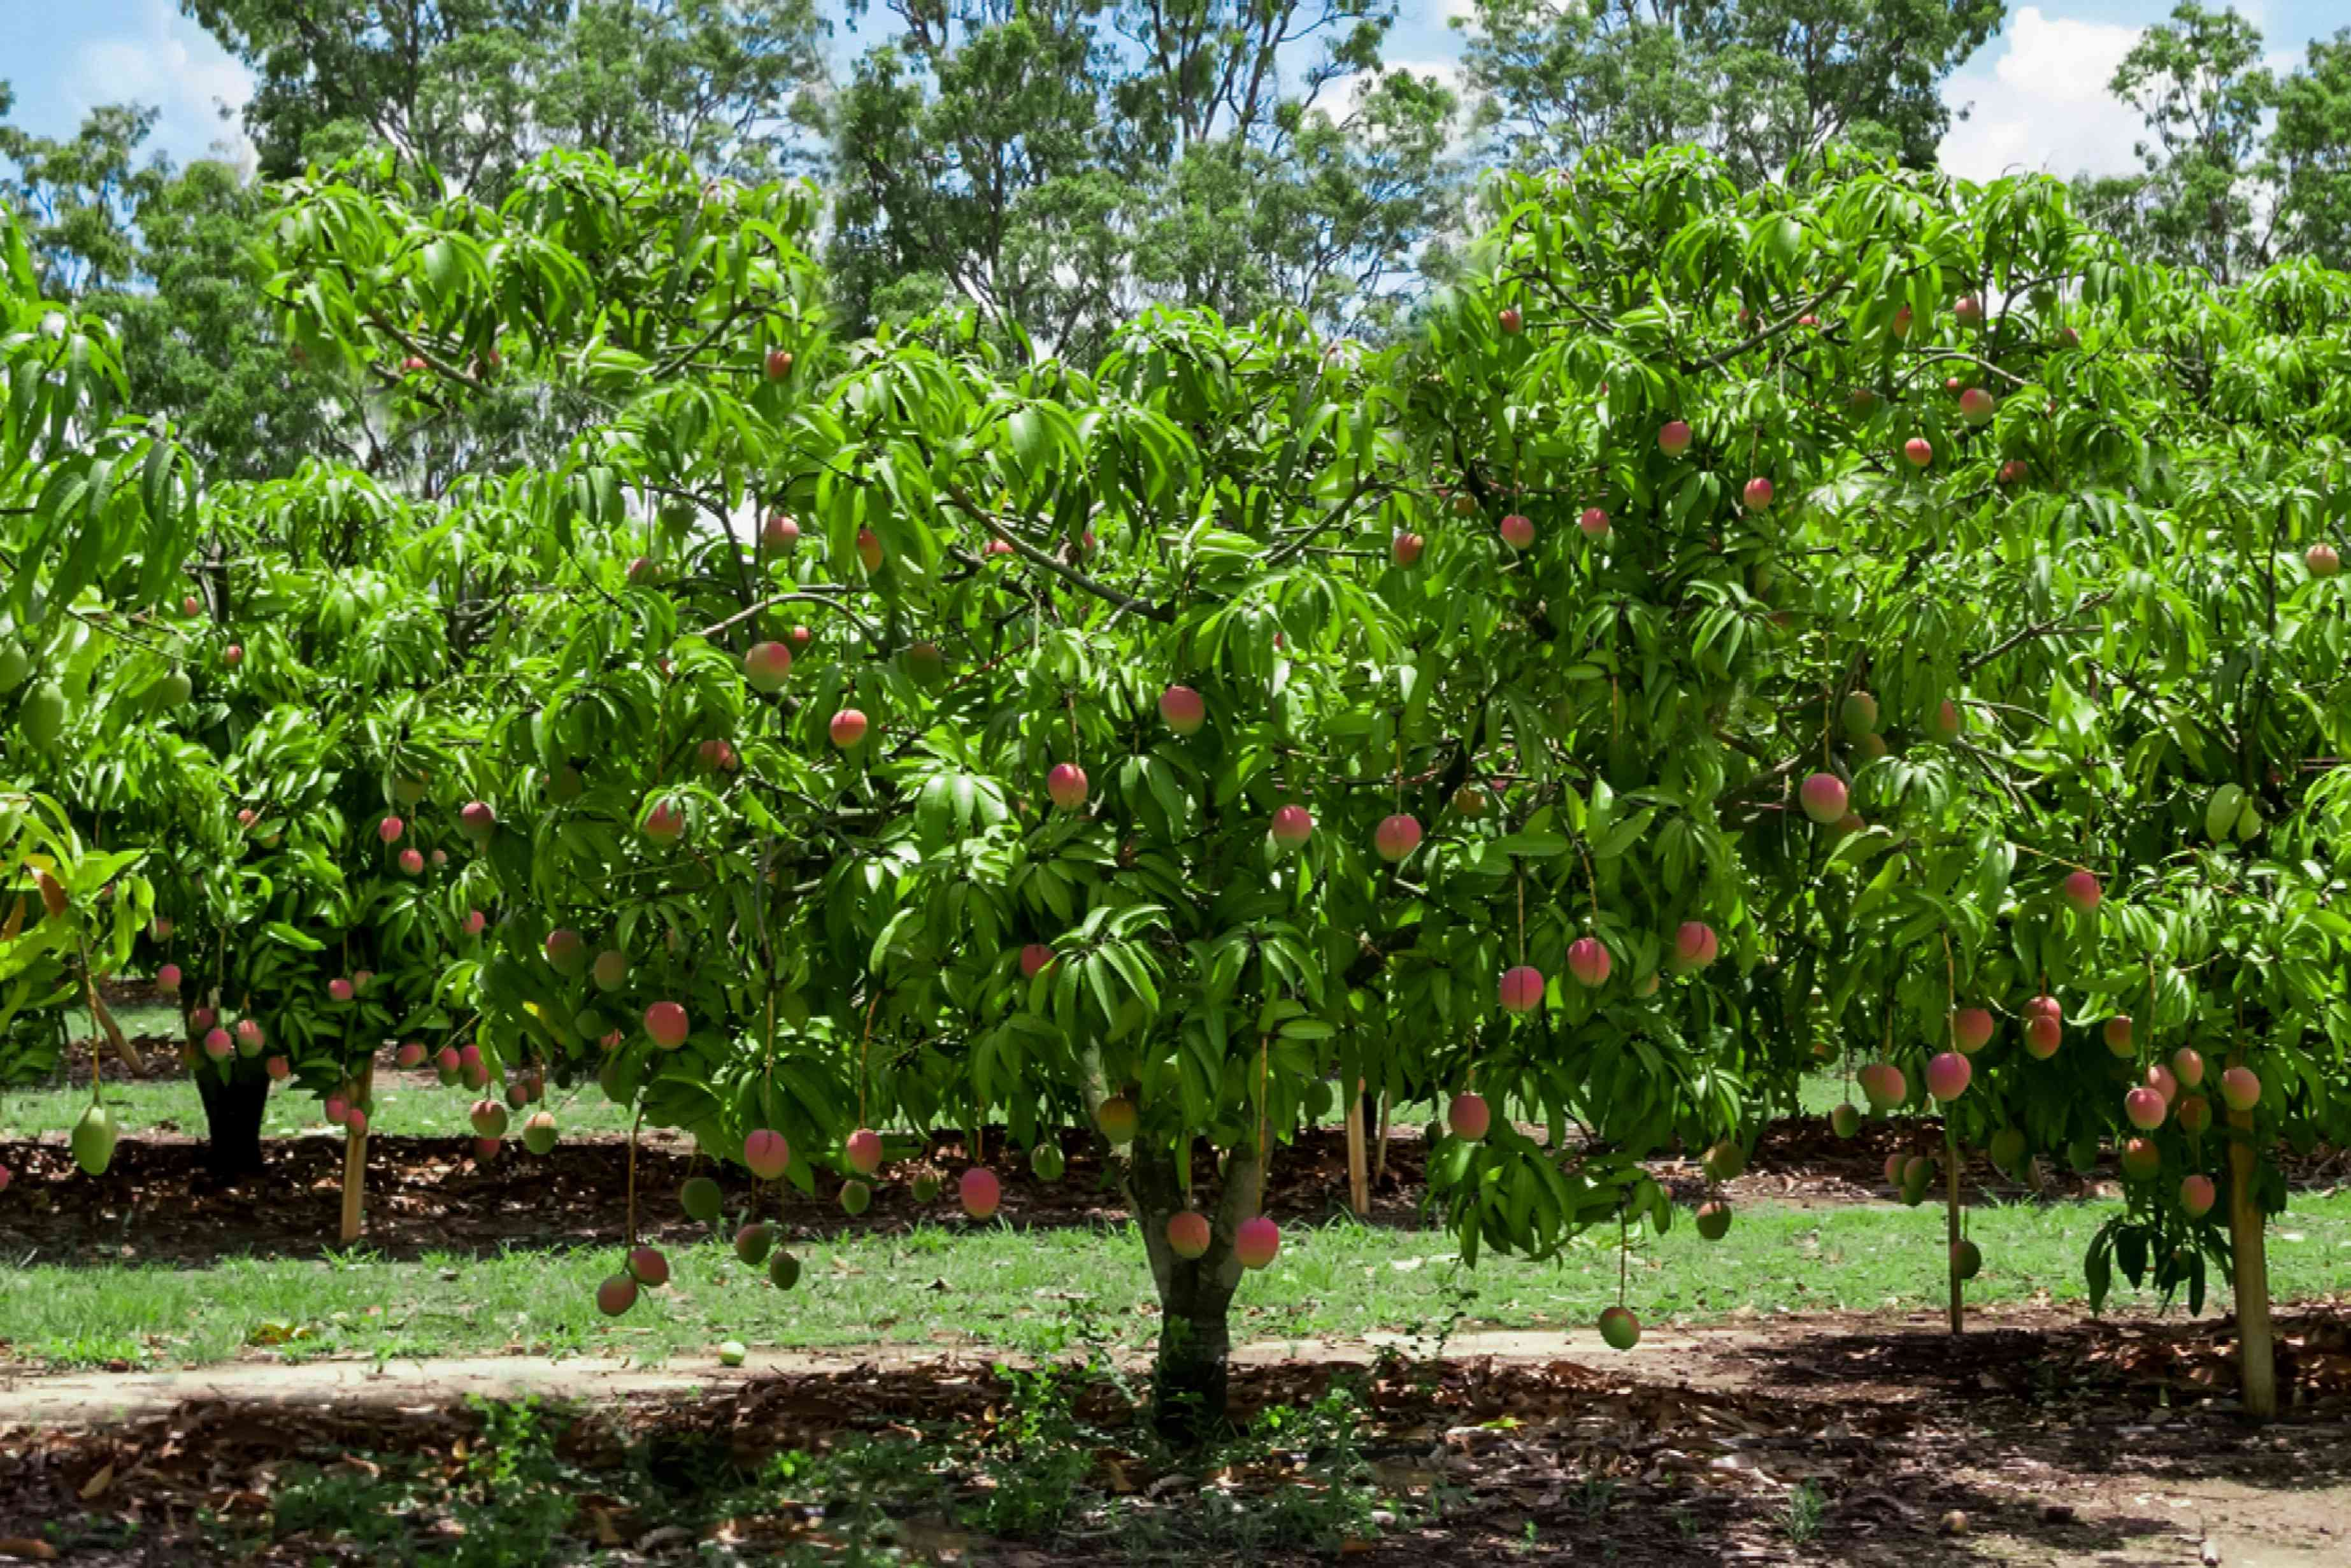 Mango tree with red mangoes hanging in garden